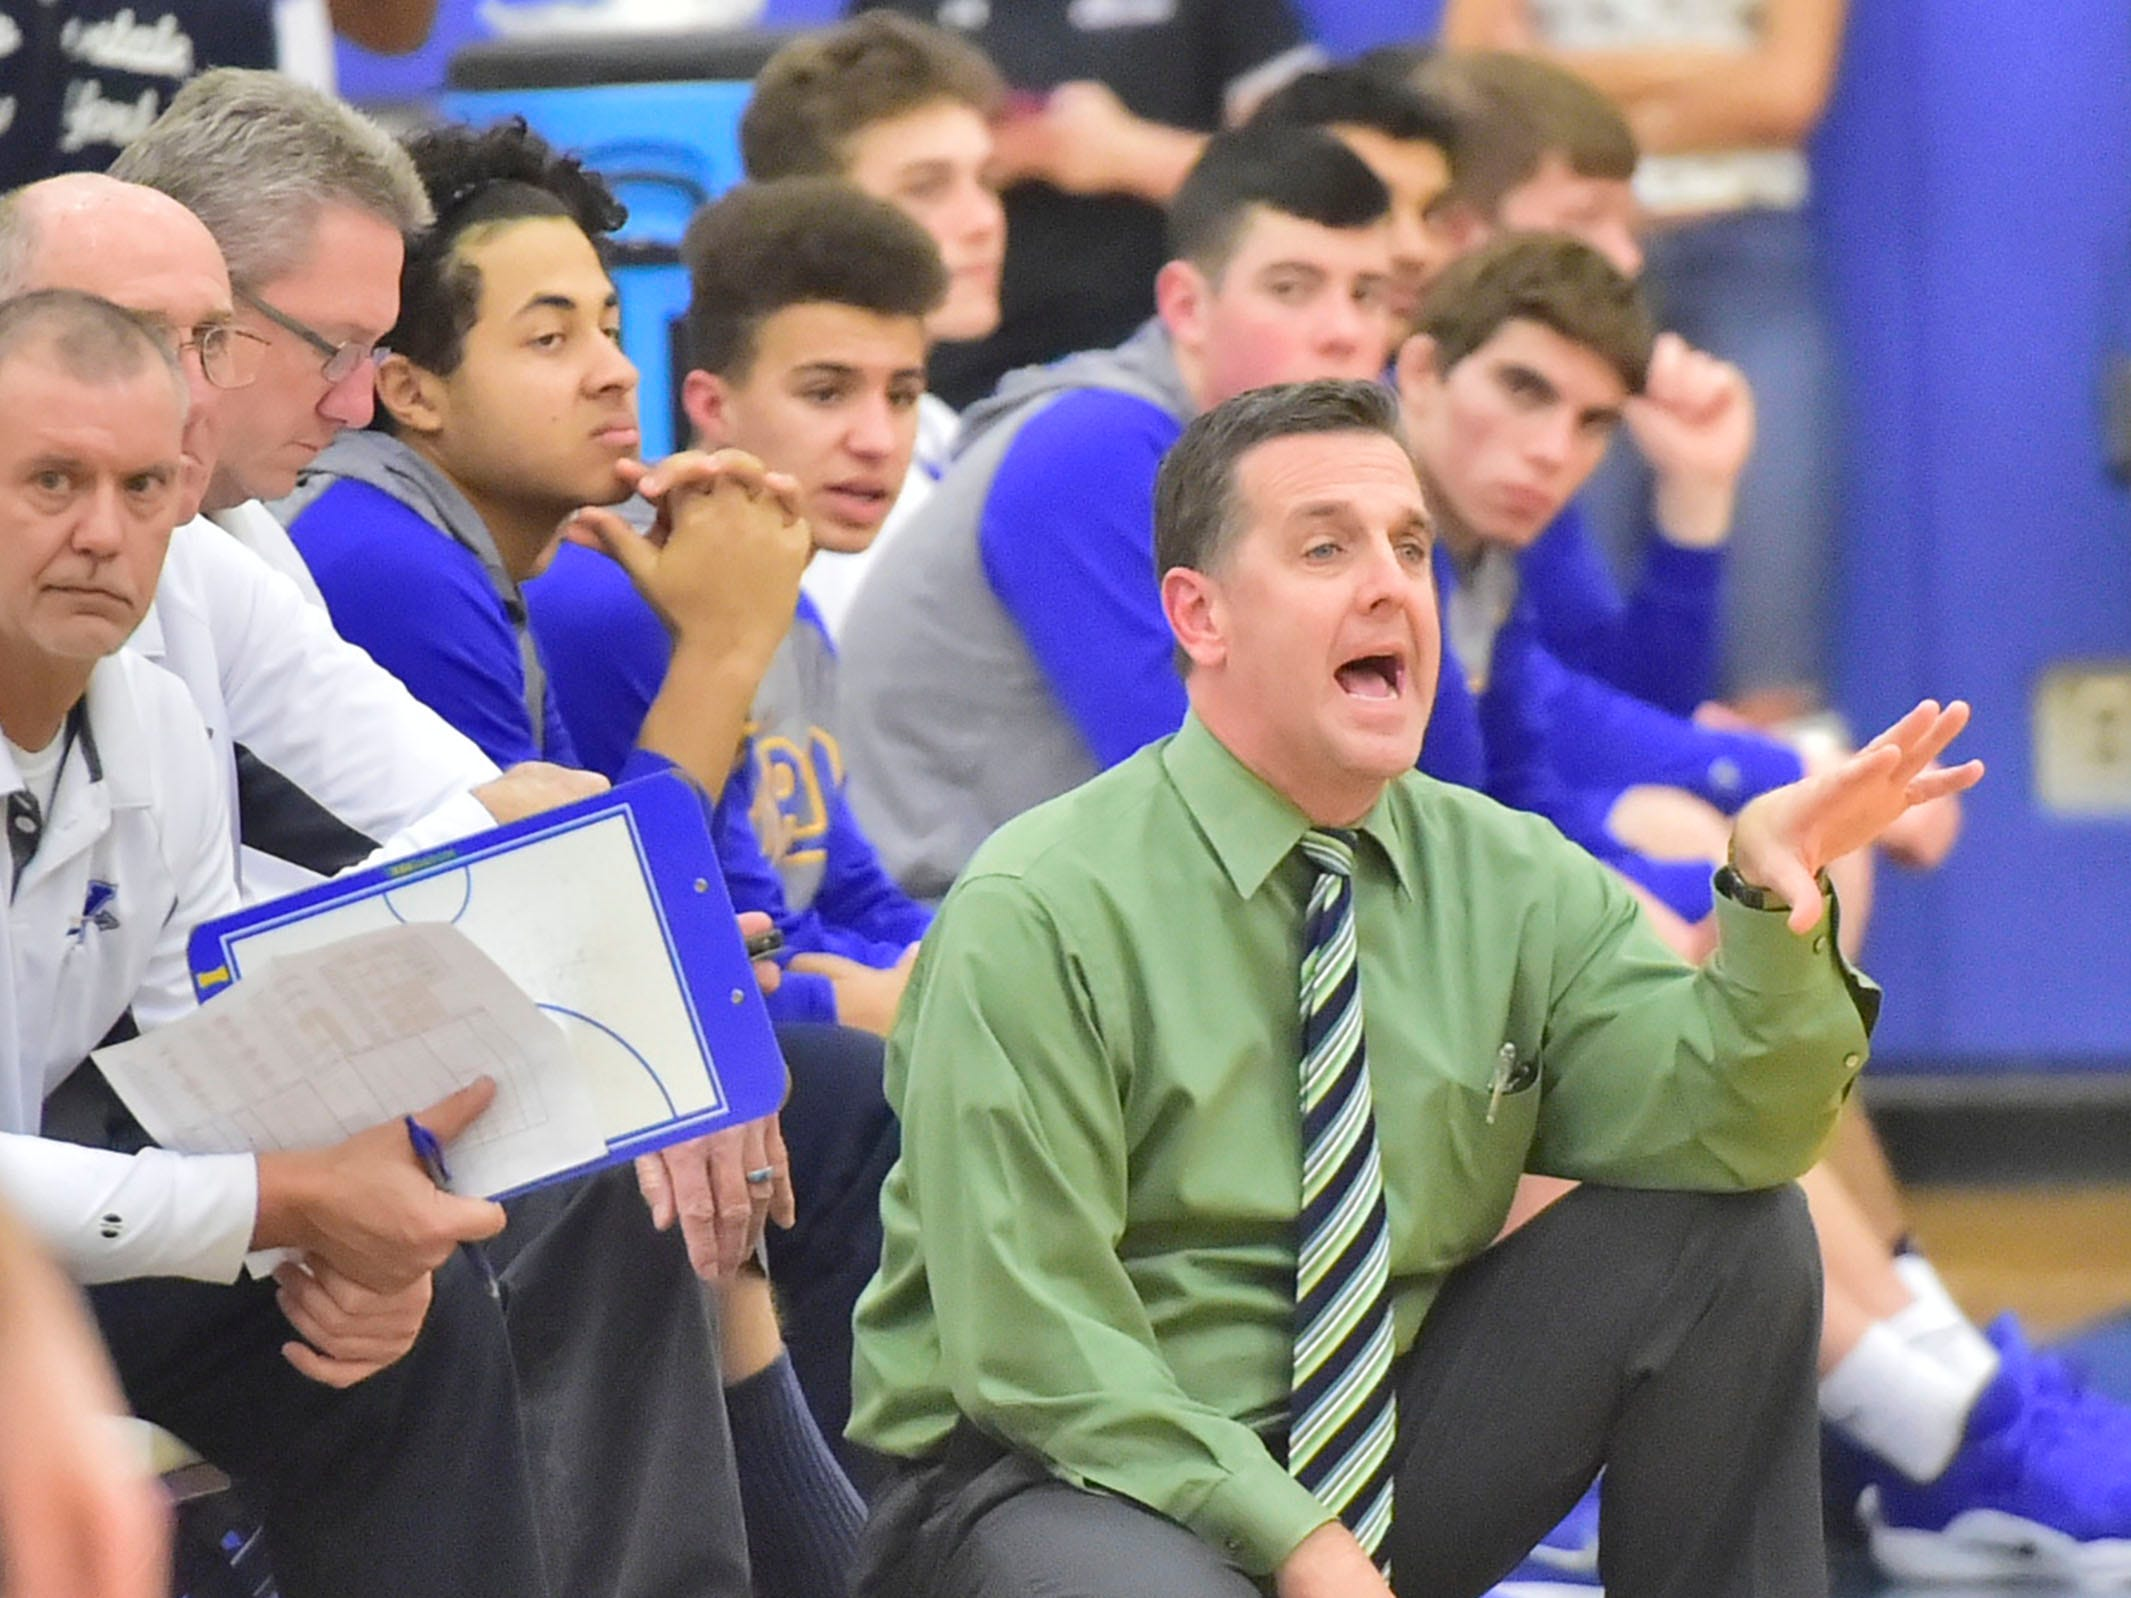 Tom Hoffman coaches the Waynesboro Indians on Tuesday, December 18, 2018. Waynesboro defeated Shippensburg 72-59 during a home game.